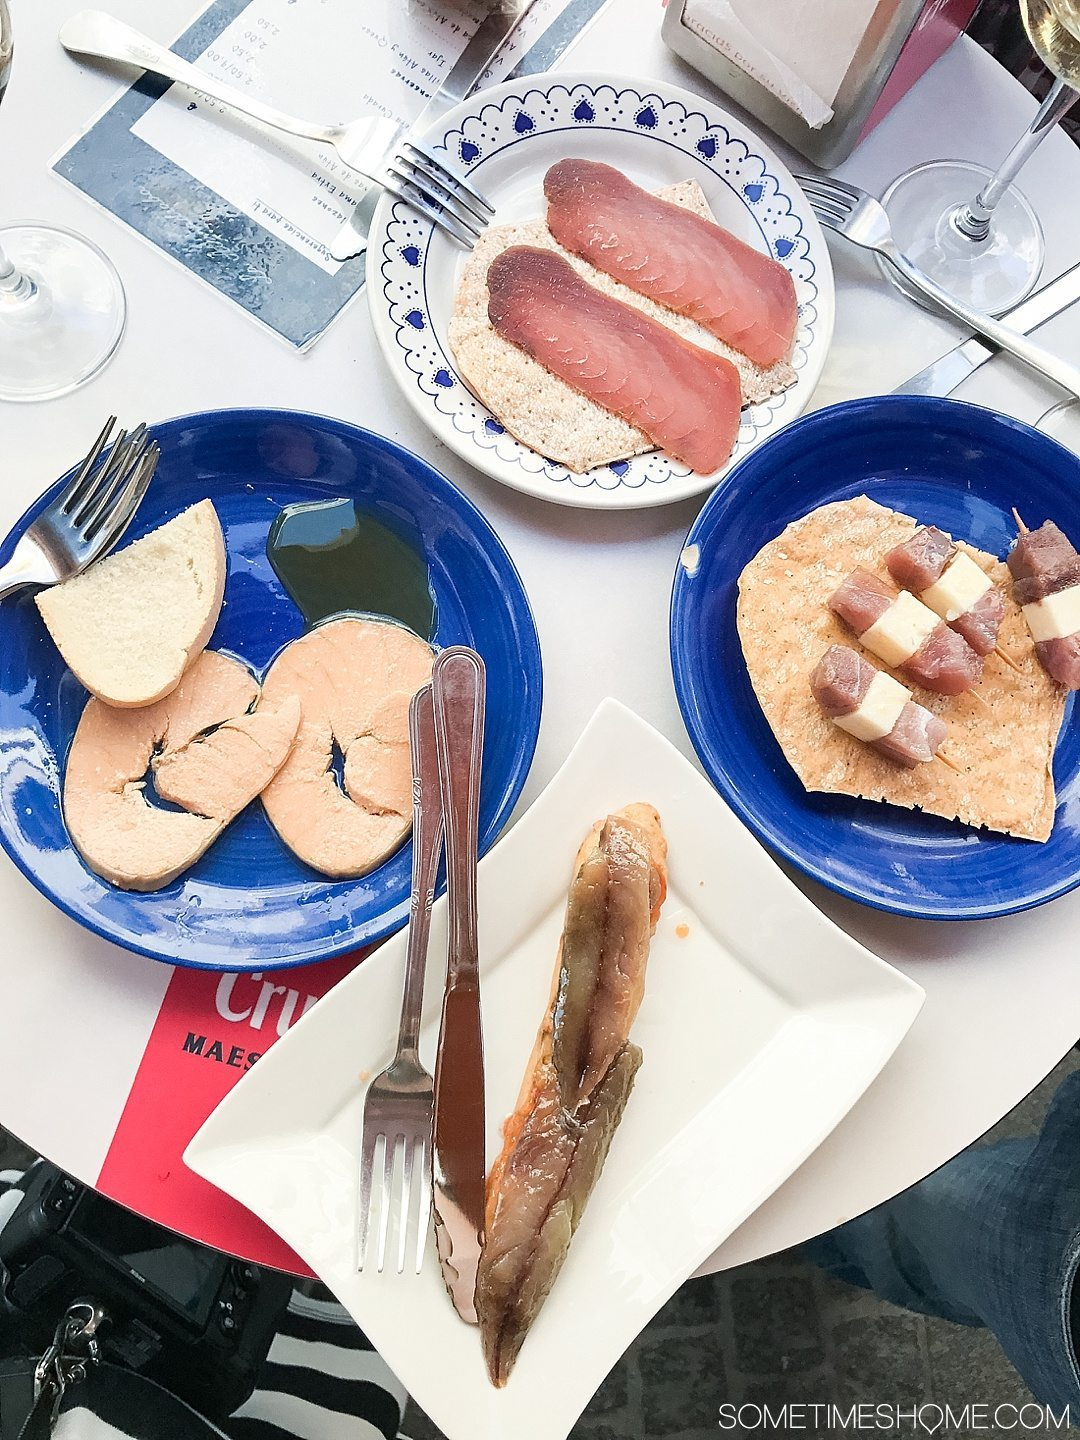 Eat Your Way Through Seville on Sometimes Home travel blog. Photo of tuna prepared multiple ways.